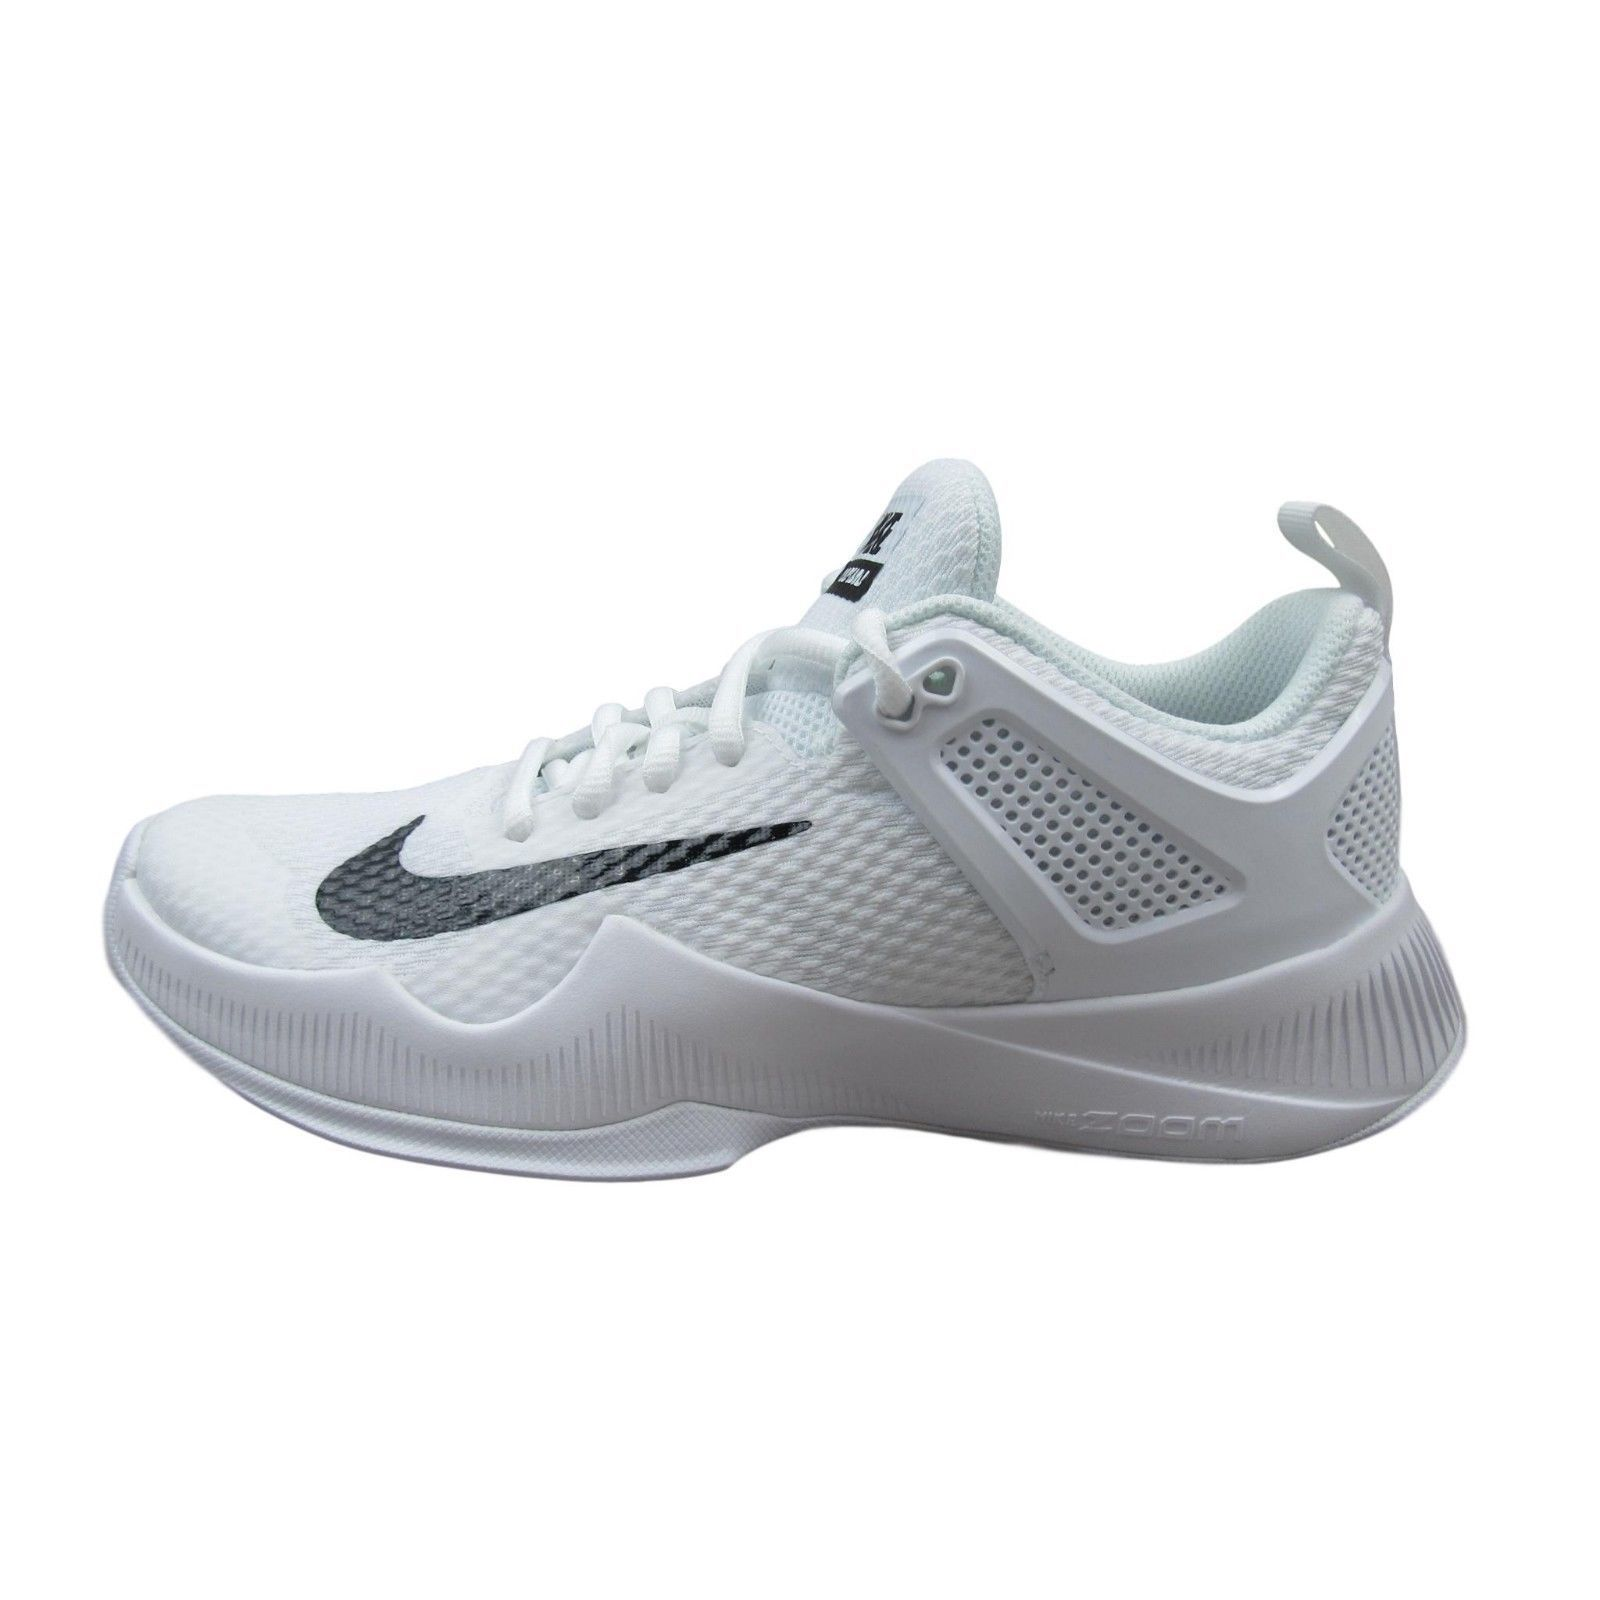 uk availability a841a 3abe8 nike-air-zoom-hyperace-volleyball-shoes-womens-902367-